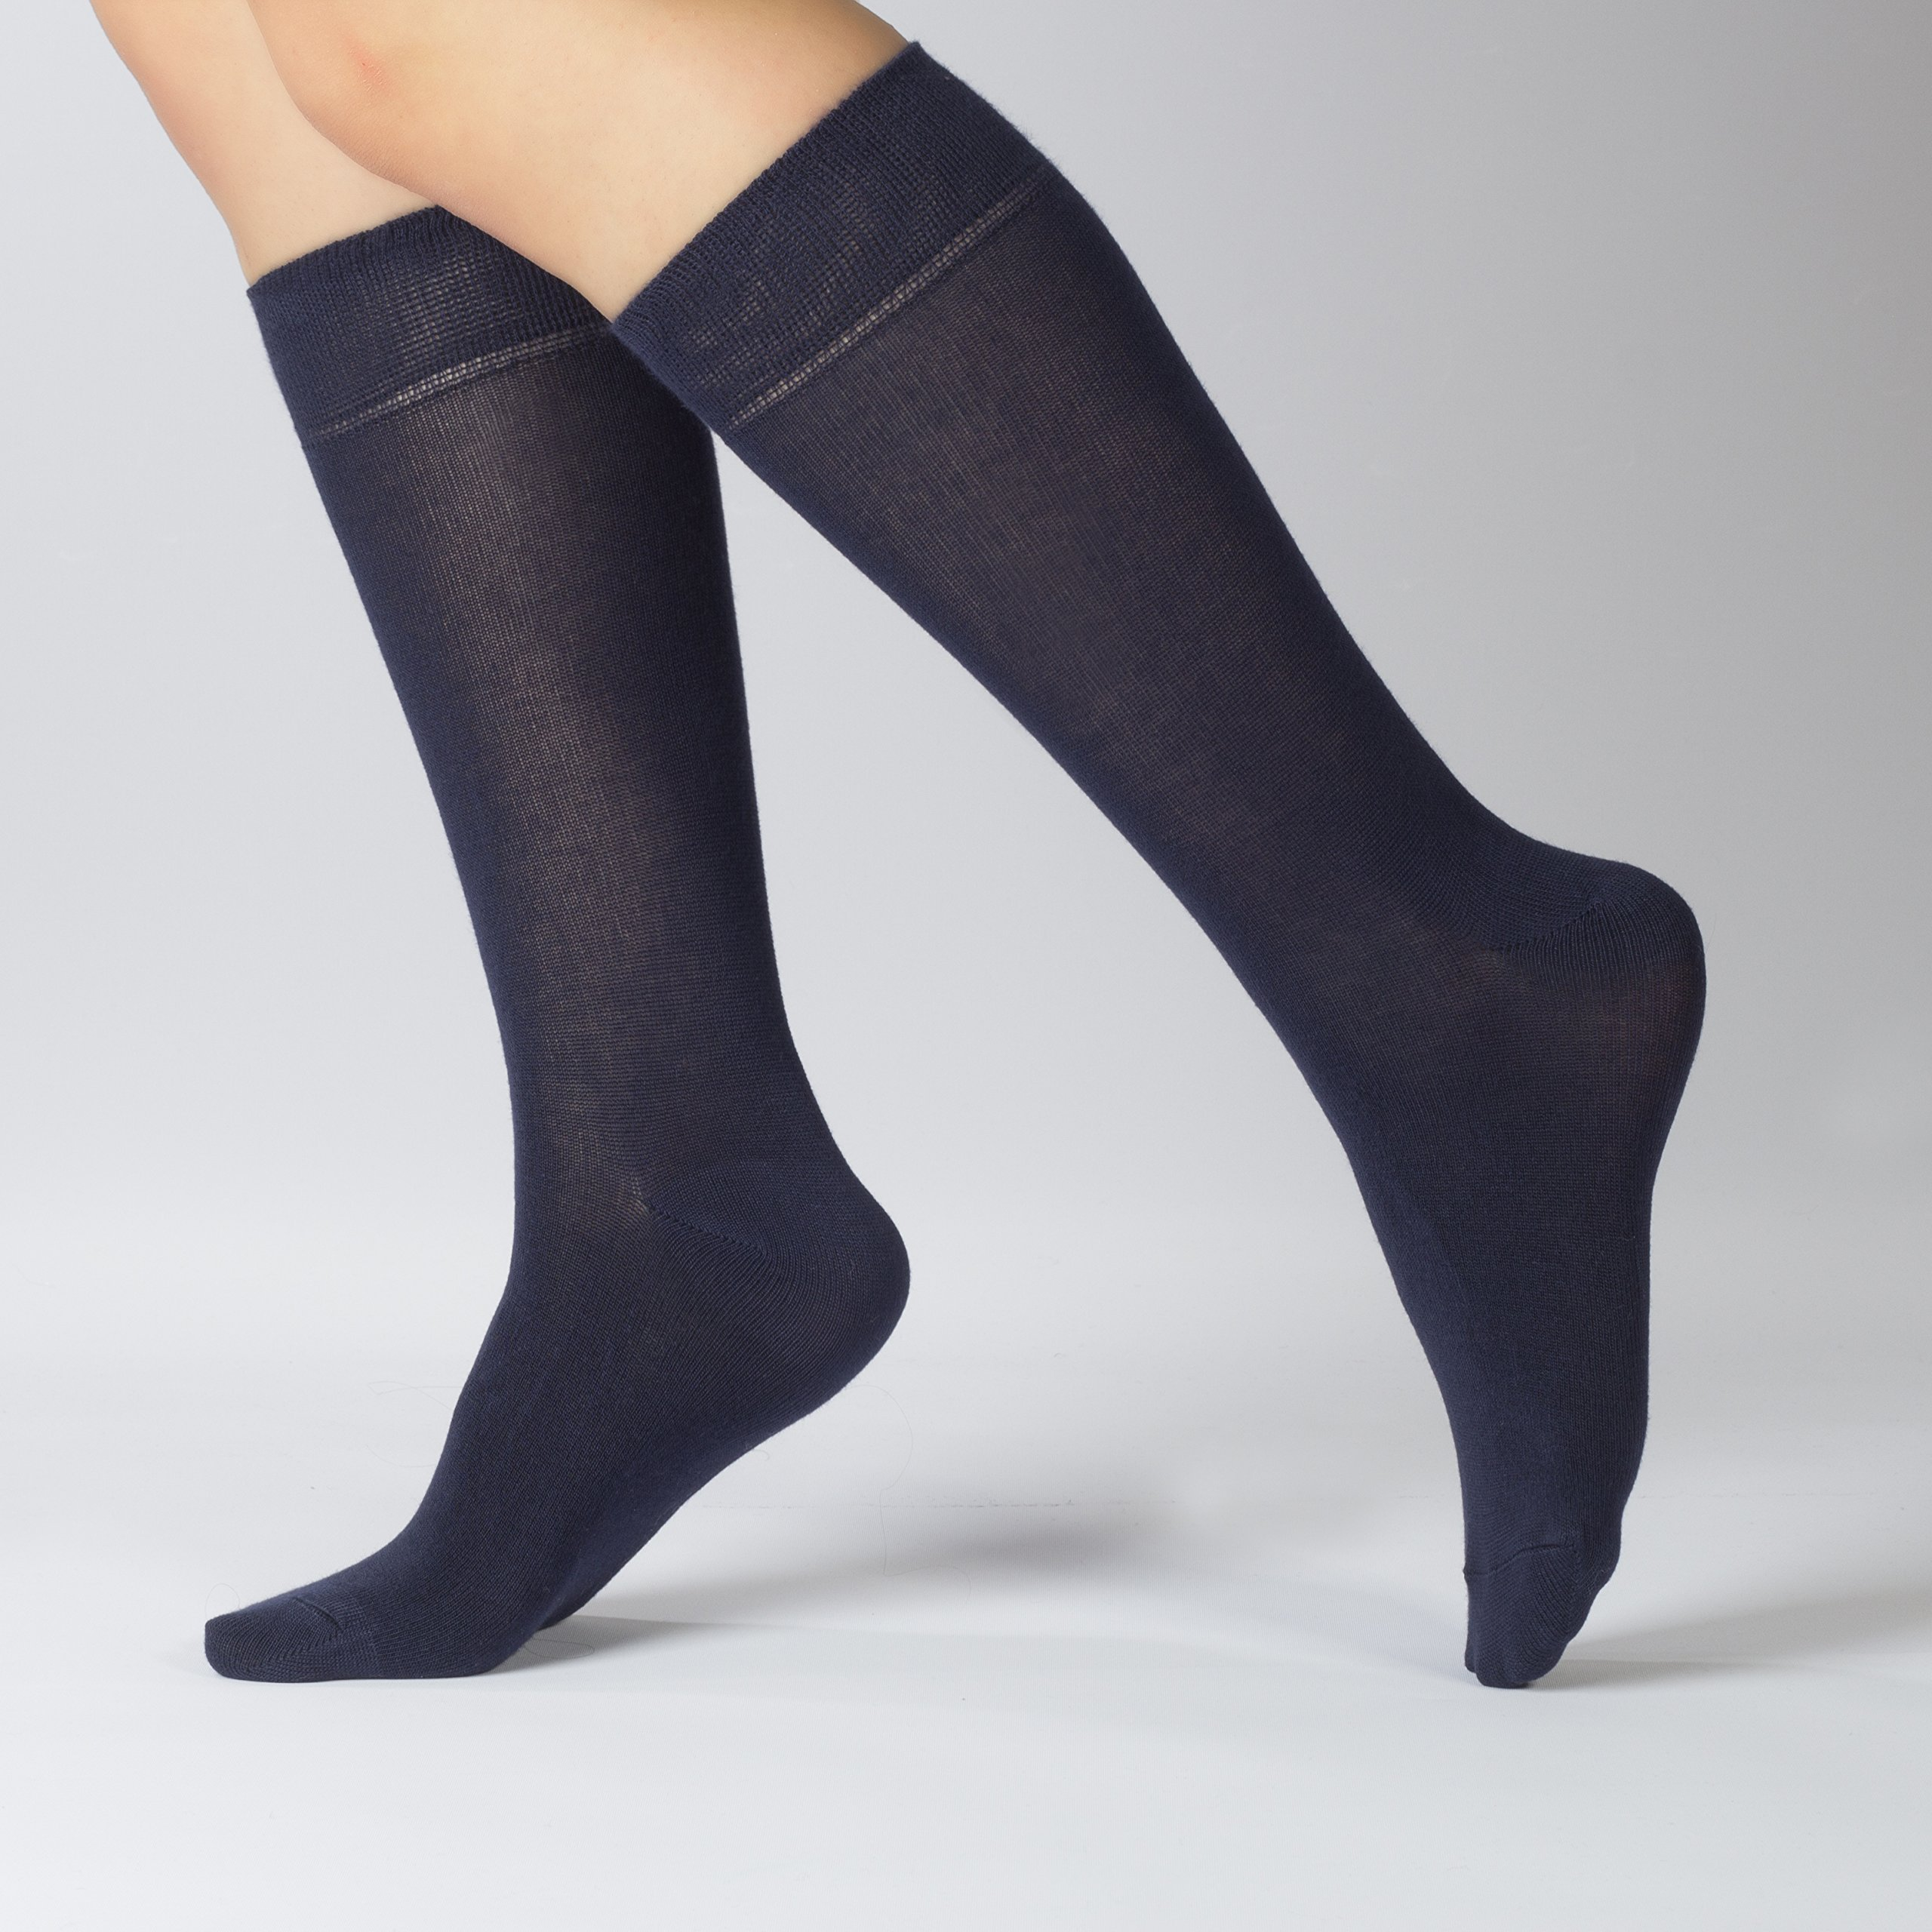 Hugh Ugoli Women's Dress Crew Socks Bamboo Business Casual Comfort Seam (Shoe size: 6-9, Navy Blue) by Hu Socks (Image #2)